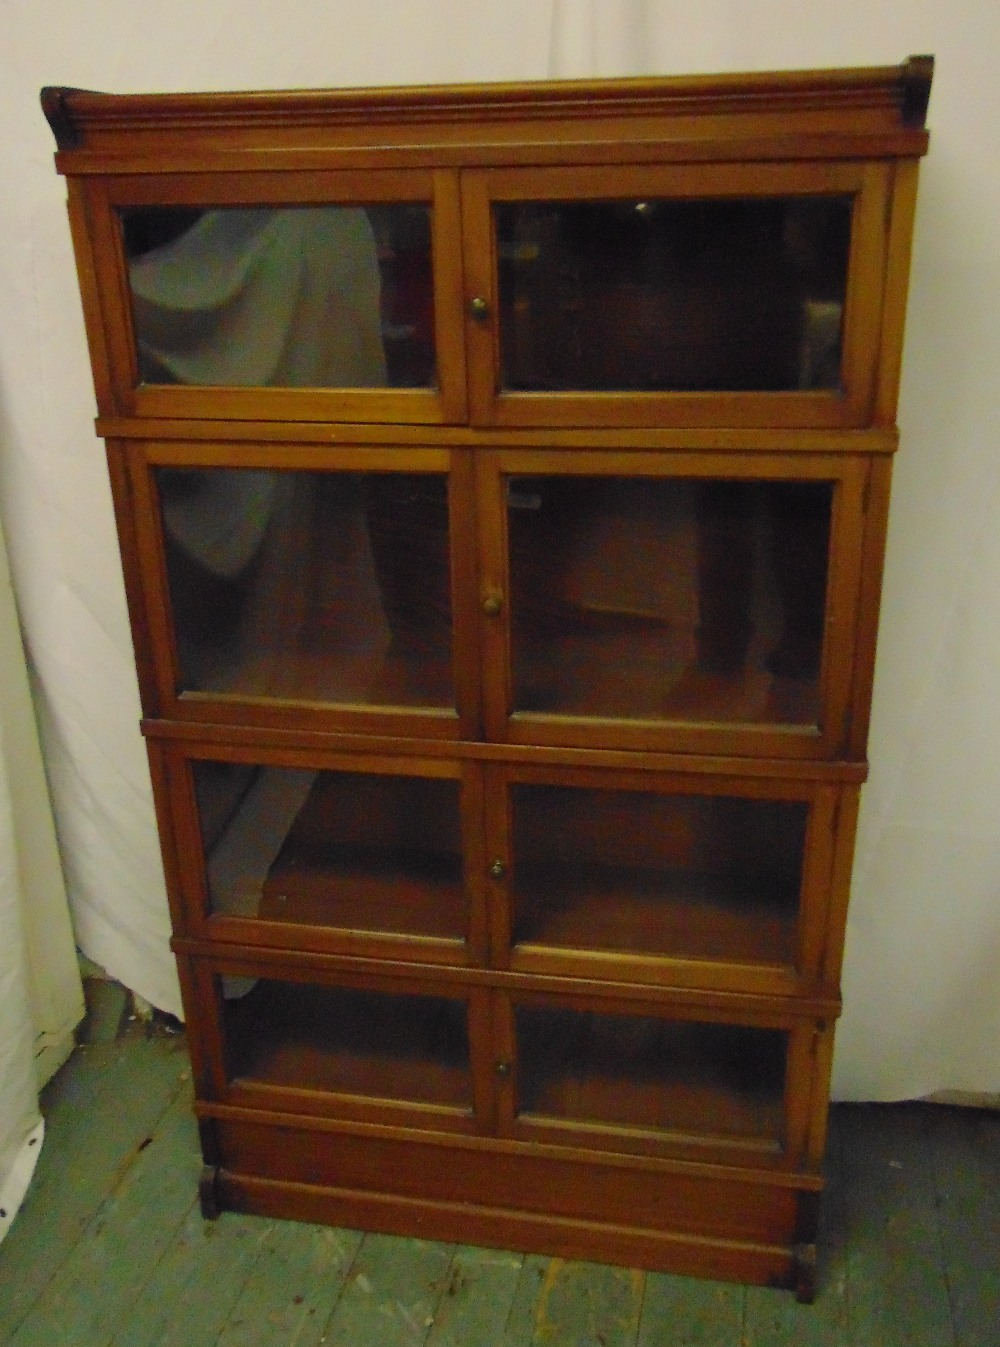 Lot 2 - An early 20th century Globe Wernicke style mahogany glazed bookcase by Simpoles of Manchester and